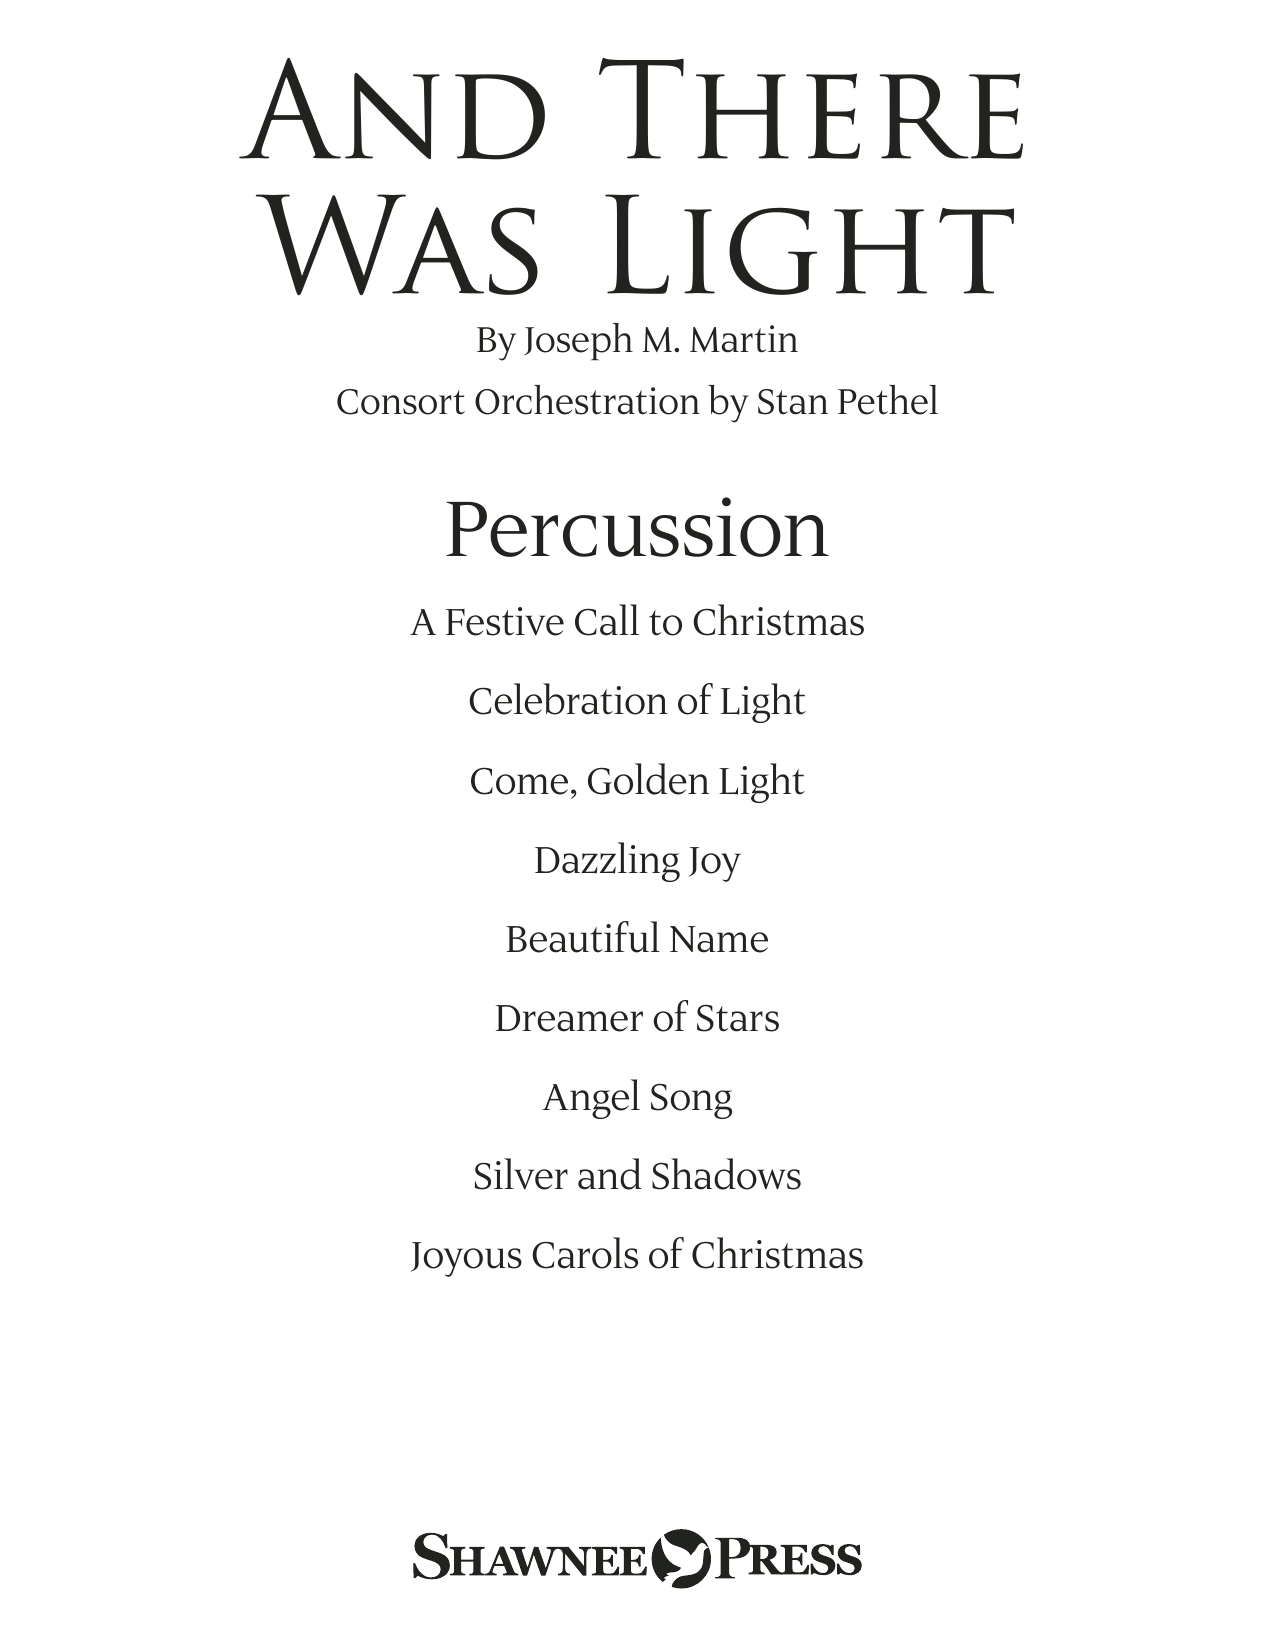 Joseph M. Martin And There Was Light - Percussion sheet music notes and chords. Download Printable PDF.